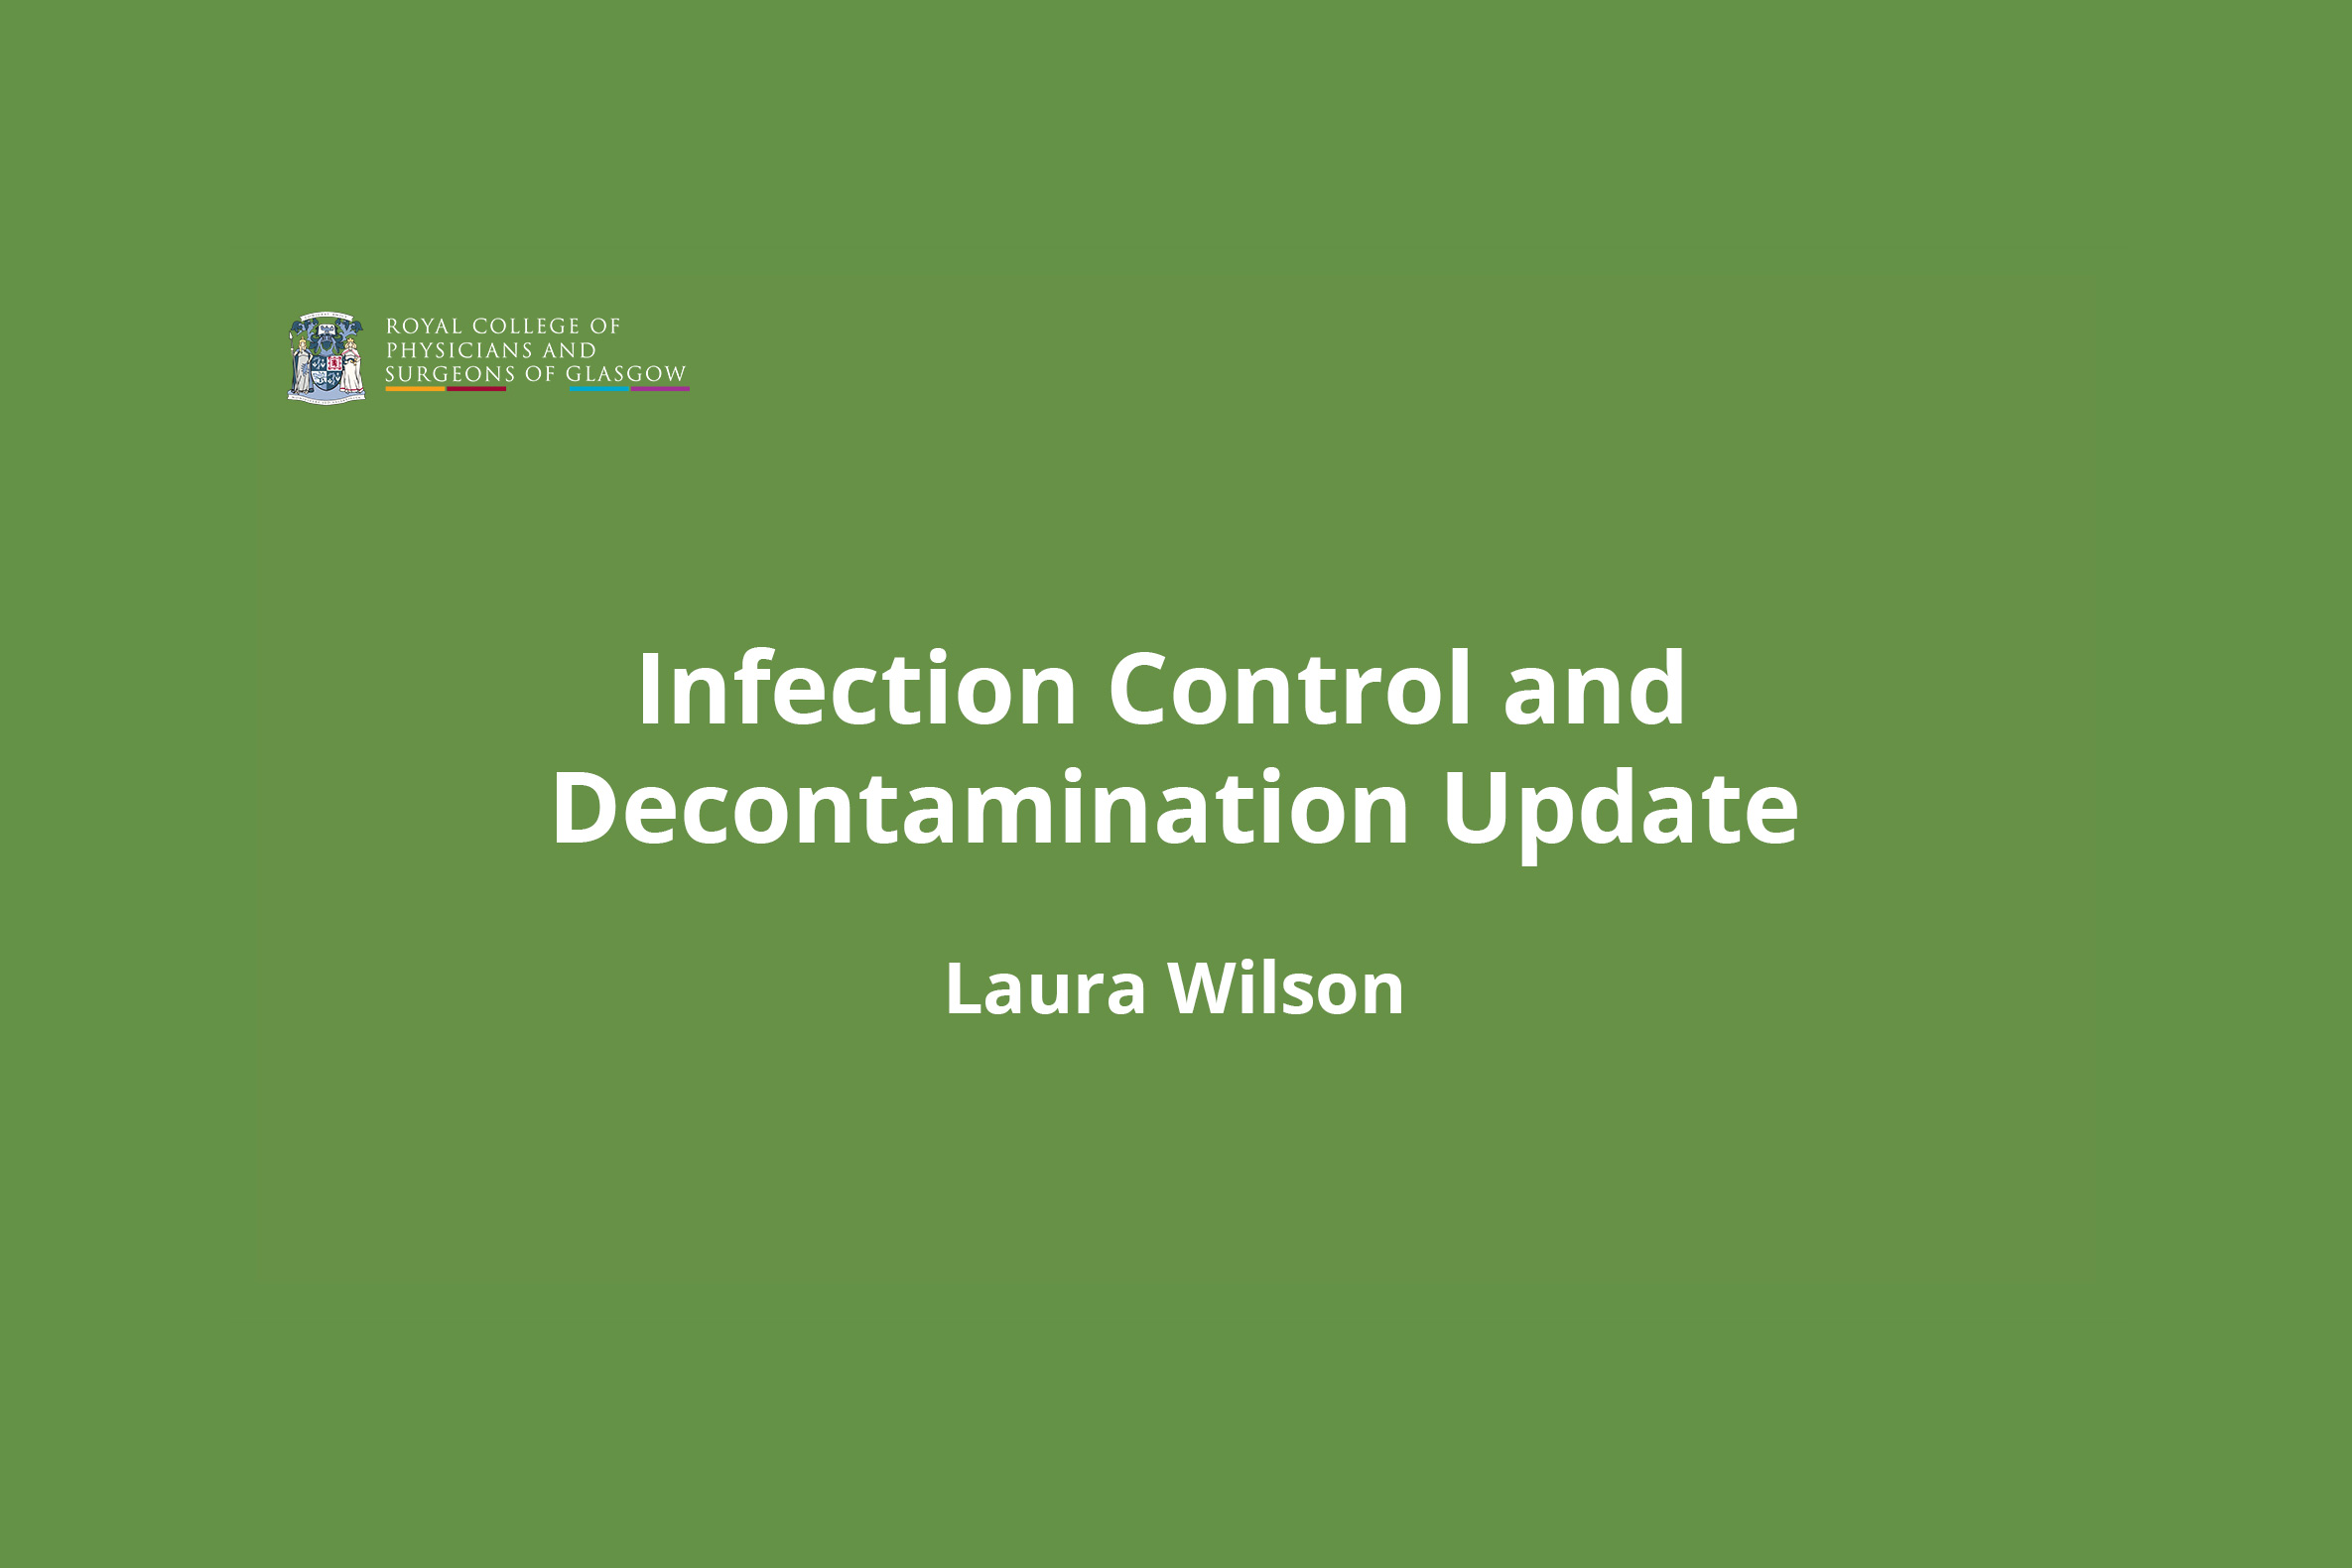 Infection Control and Decontamination Update